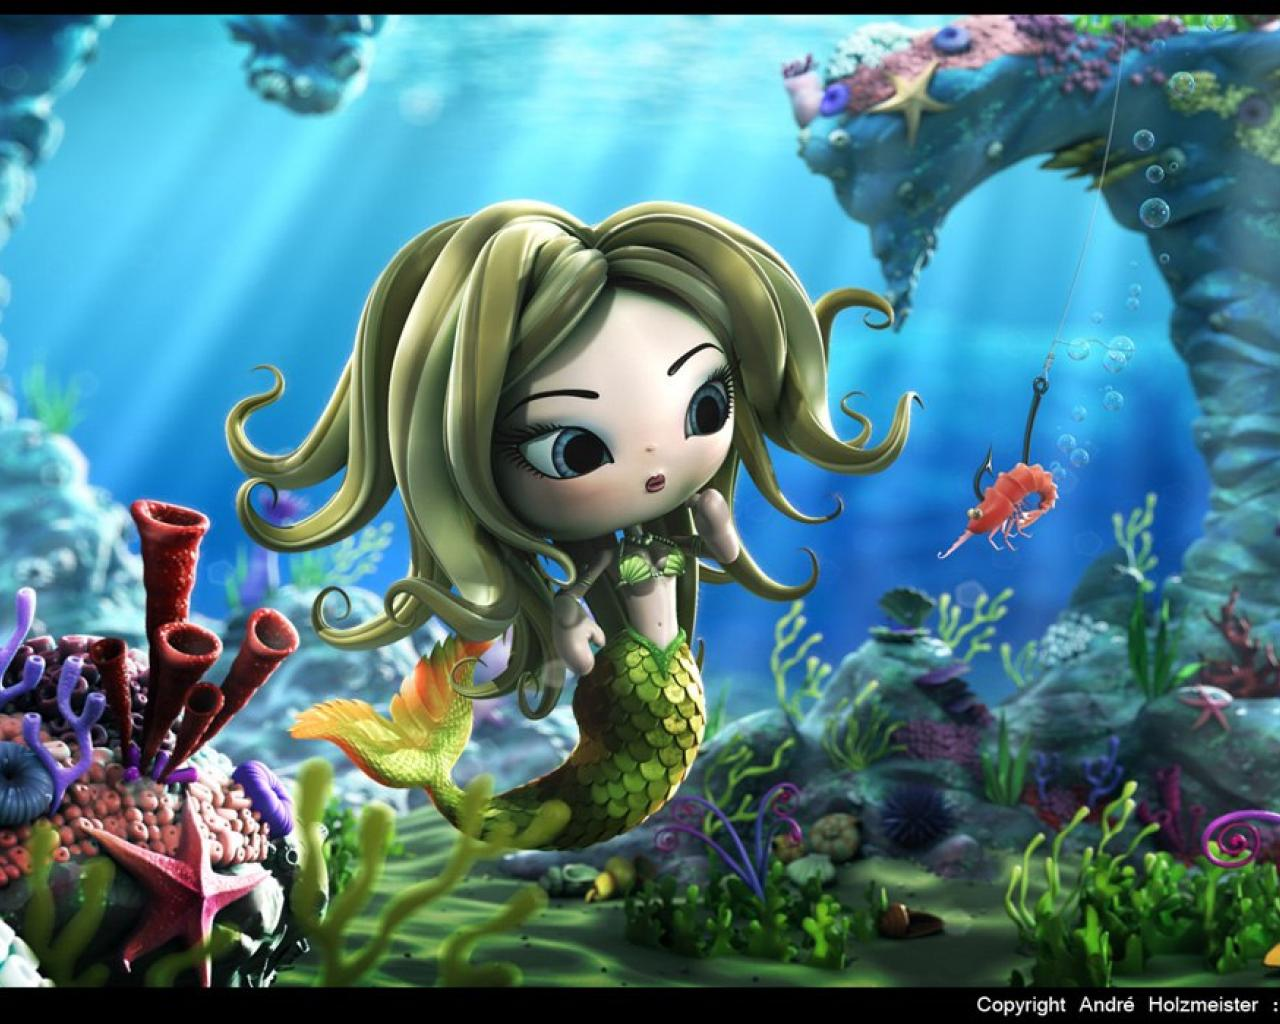 Animation Image Wallpapers (50 Wallpapers) – Adorable ...